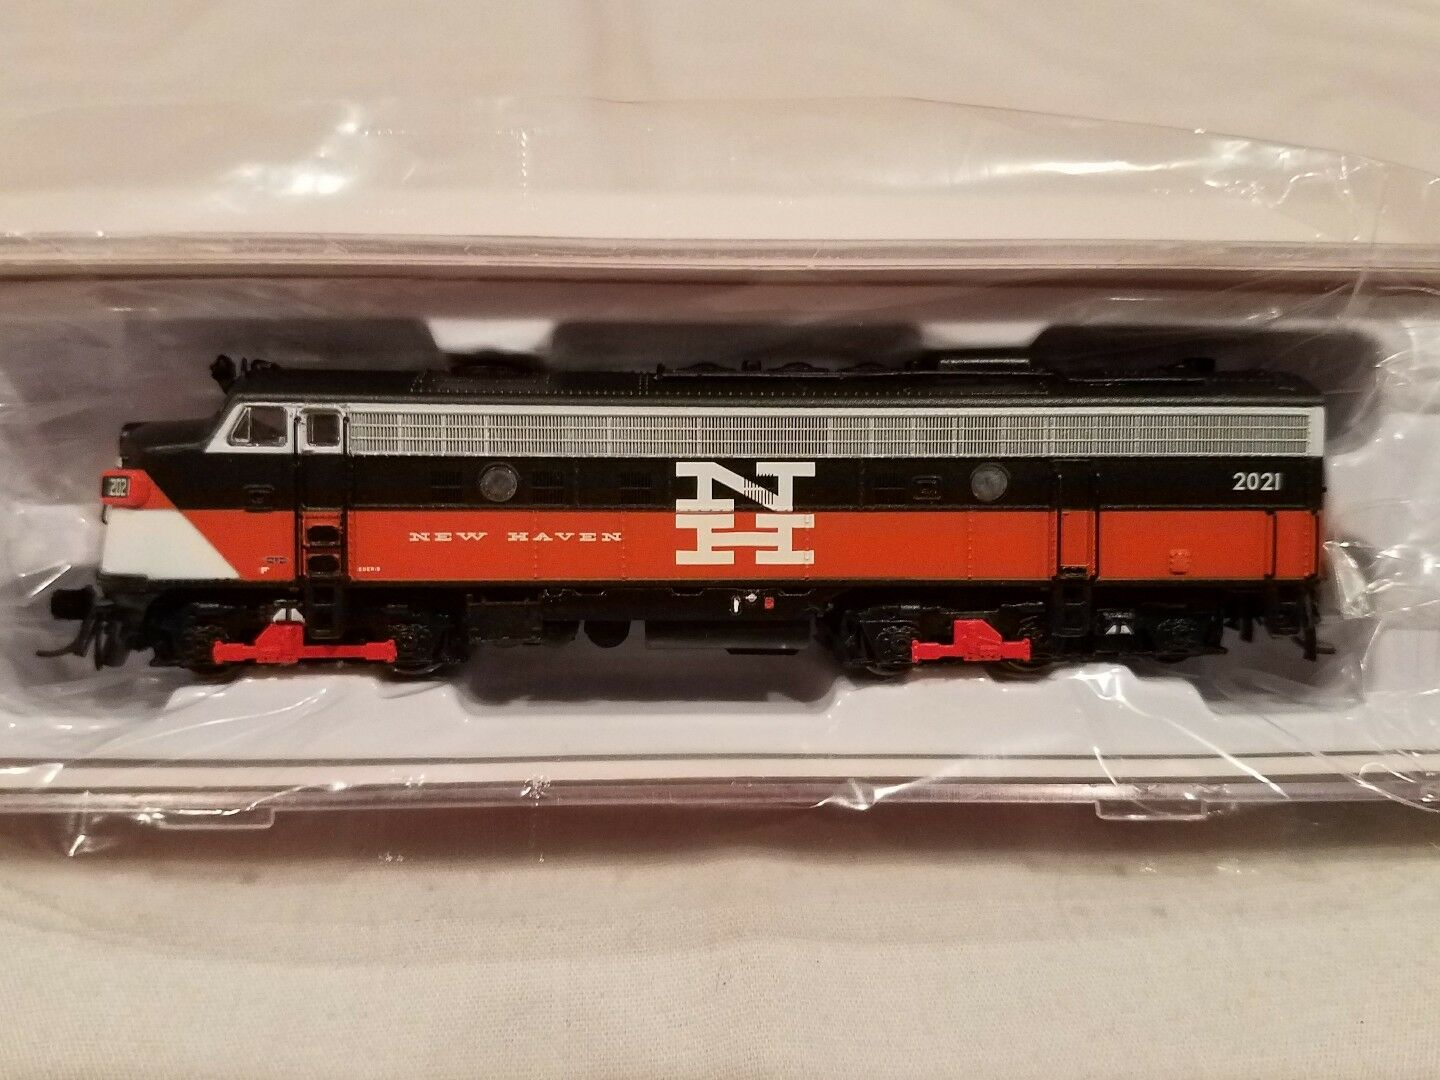 N SCALE RAPIDO TRAINS 15515 EMD FL9 NH EDER-5  2021 DCC SOUND EQUIPPED NEW